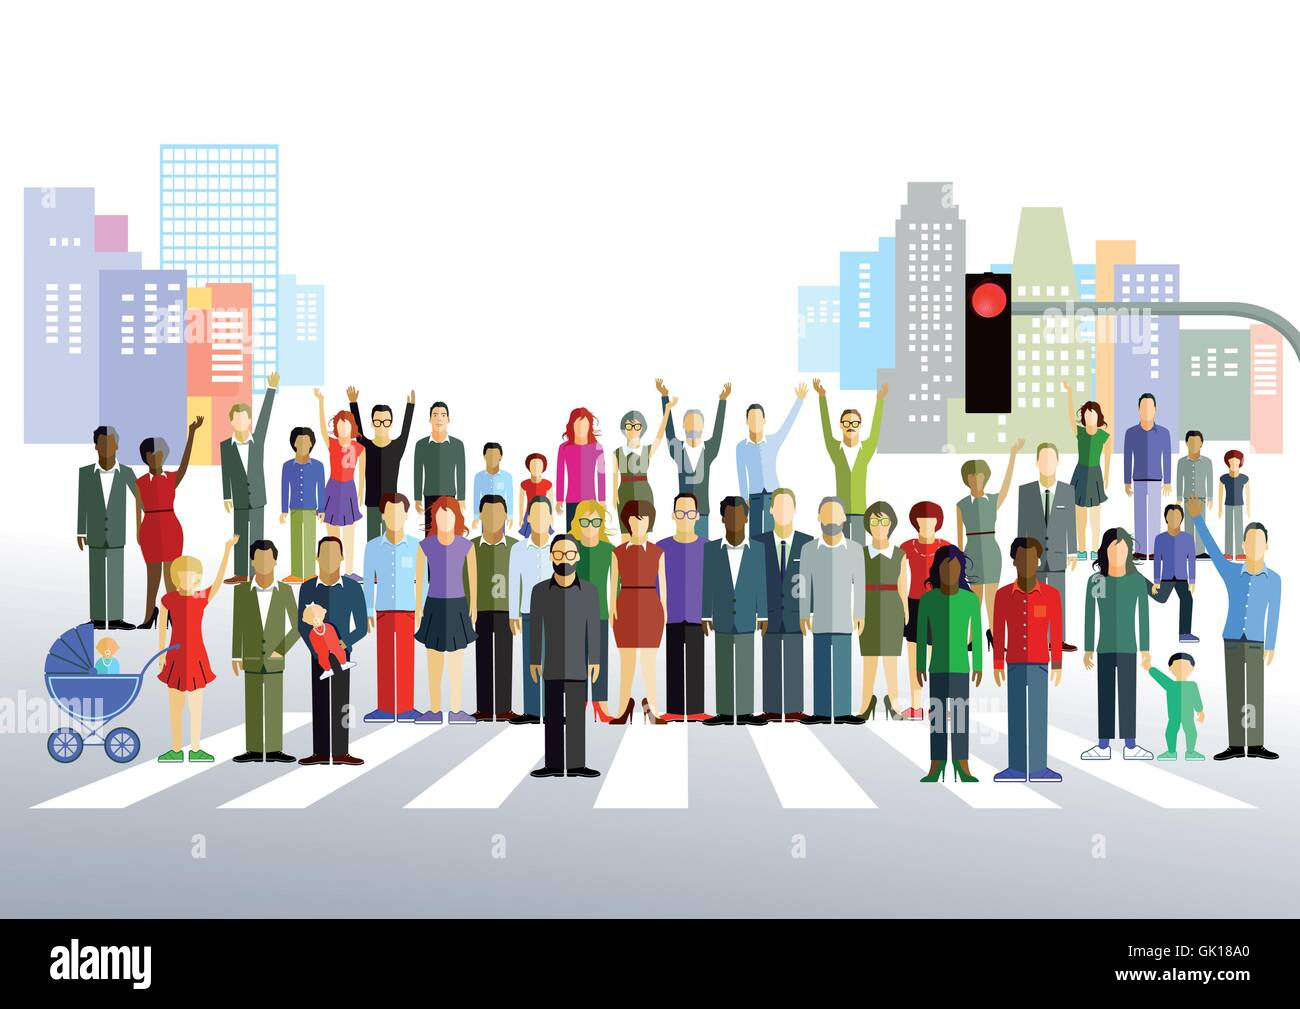 townspeople - Stock Vector